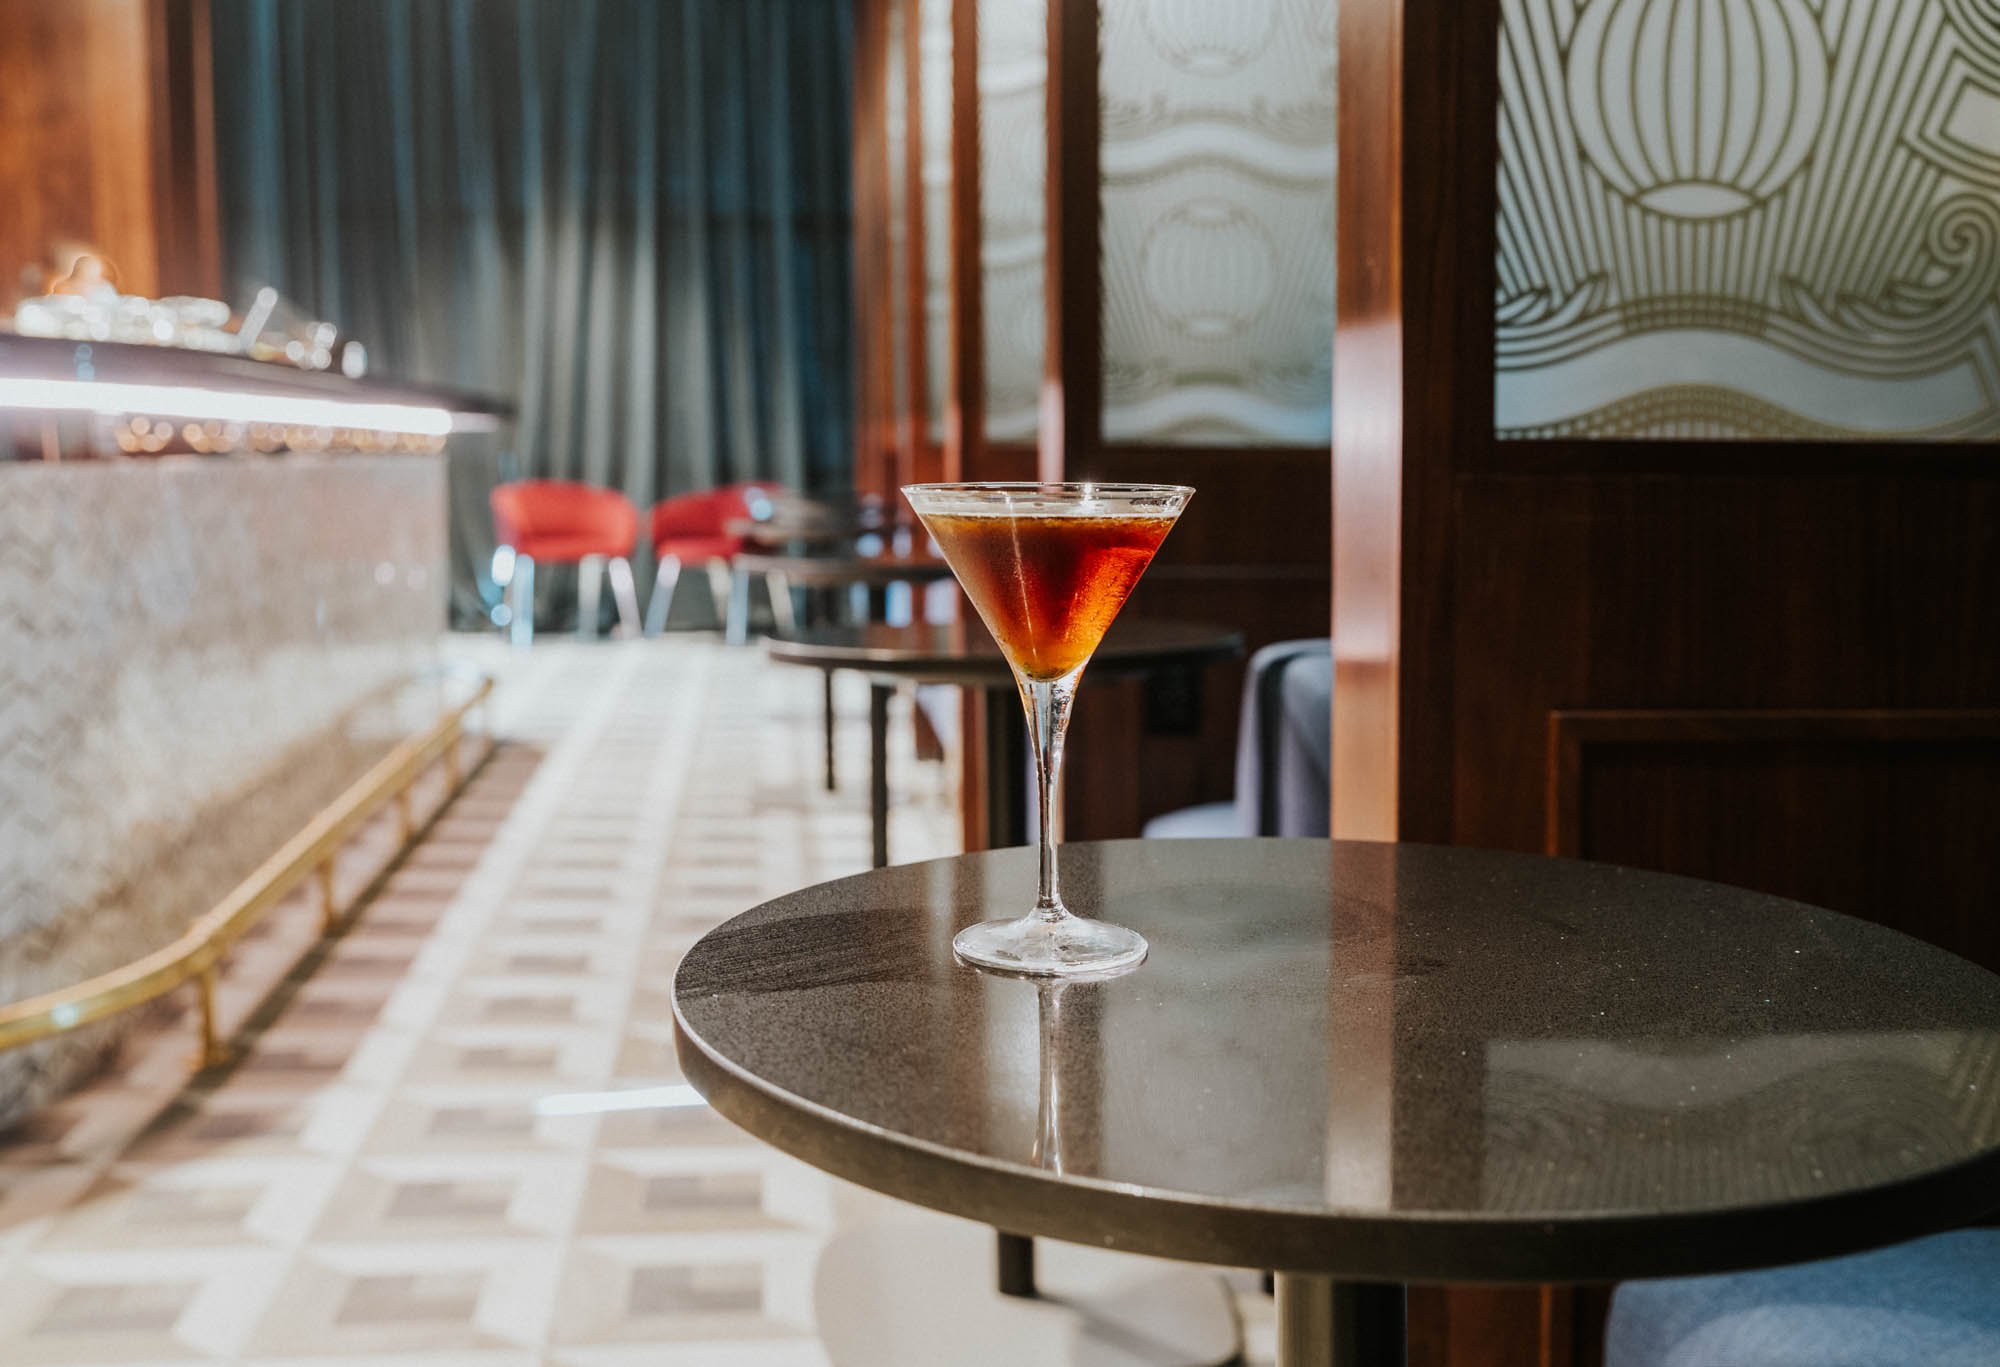 Centurion Lounge Mixologist Jim Meehan's Take on an Espresso Martini Featuring Irving Farms Coffee